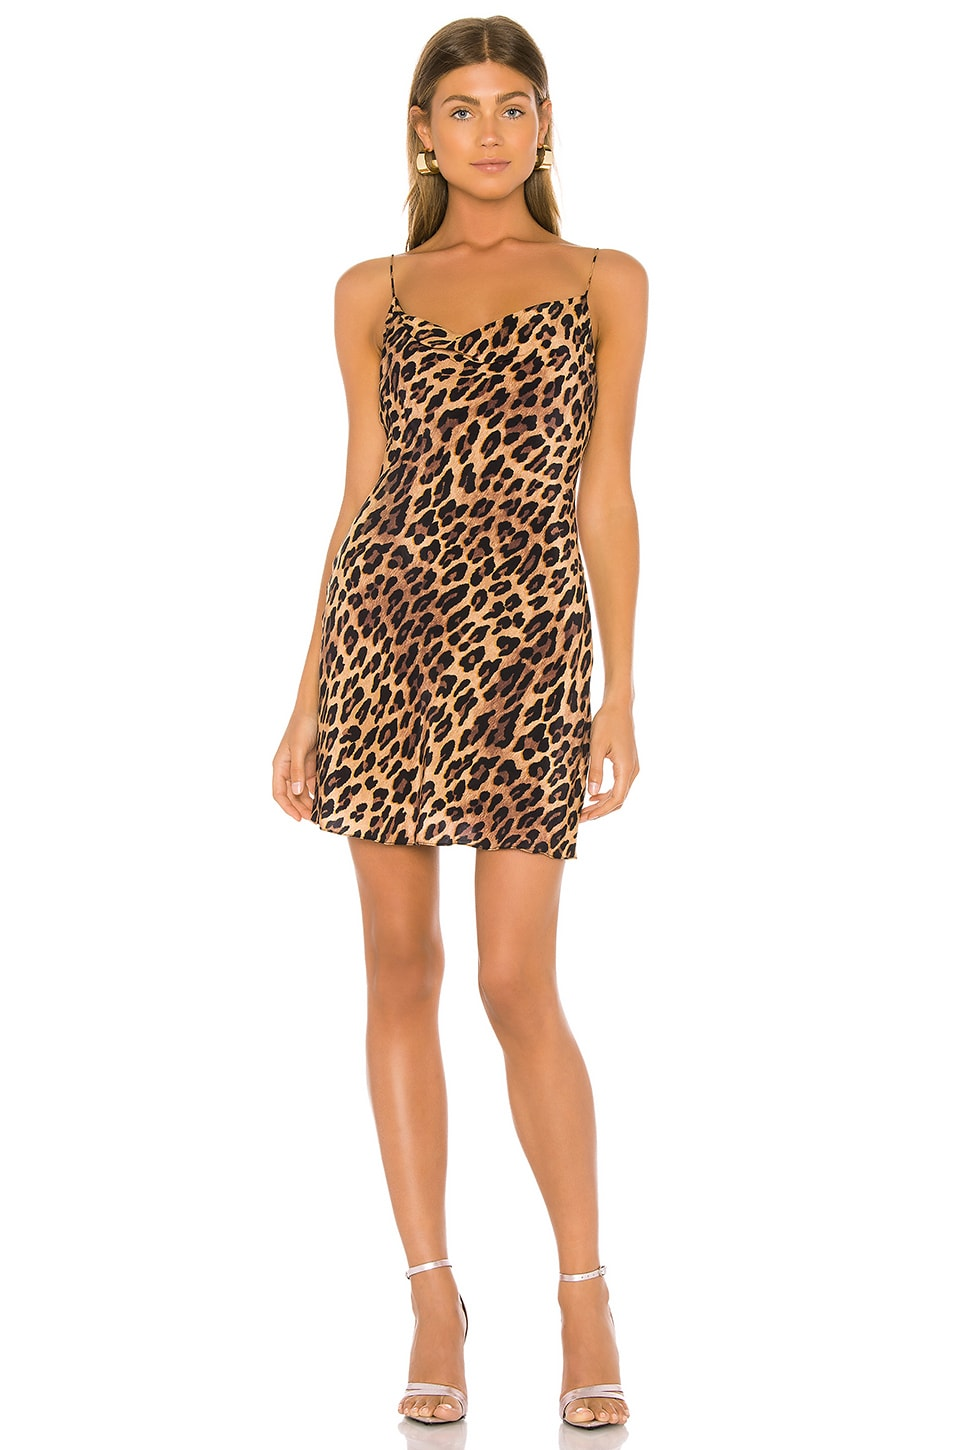 Alice + Olivia Harmony Drapey Slip Dress in Spotted Leopard Dark Tan